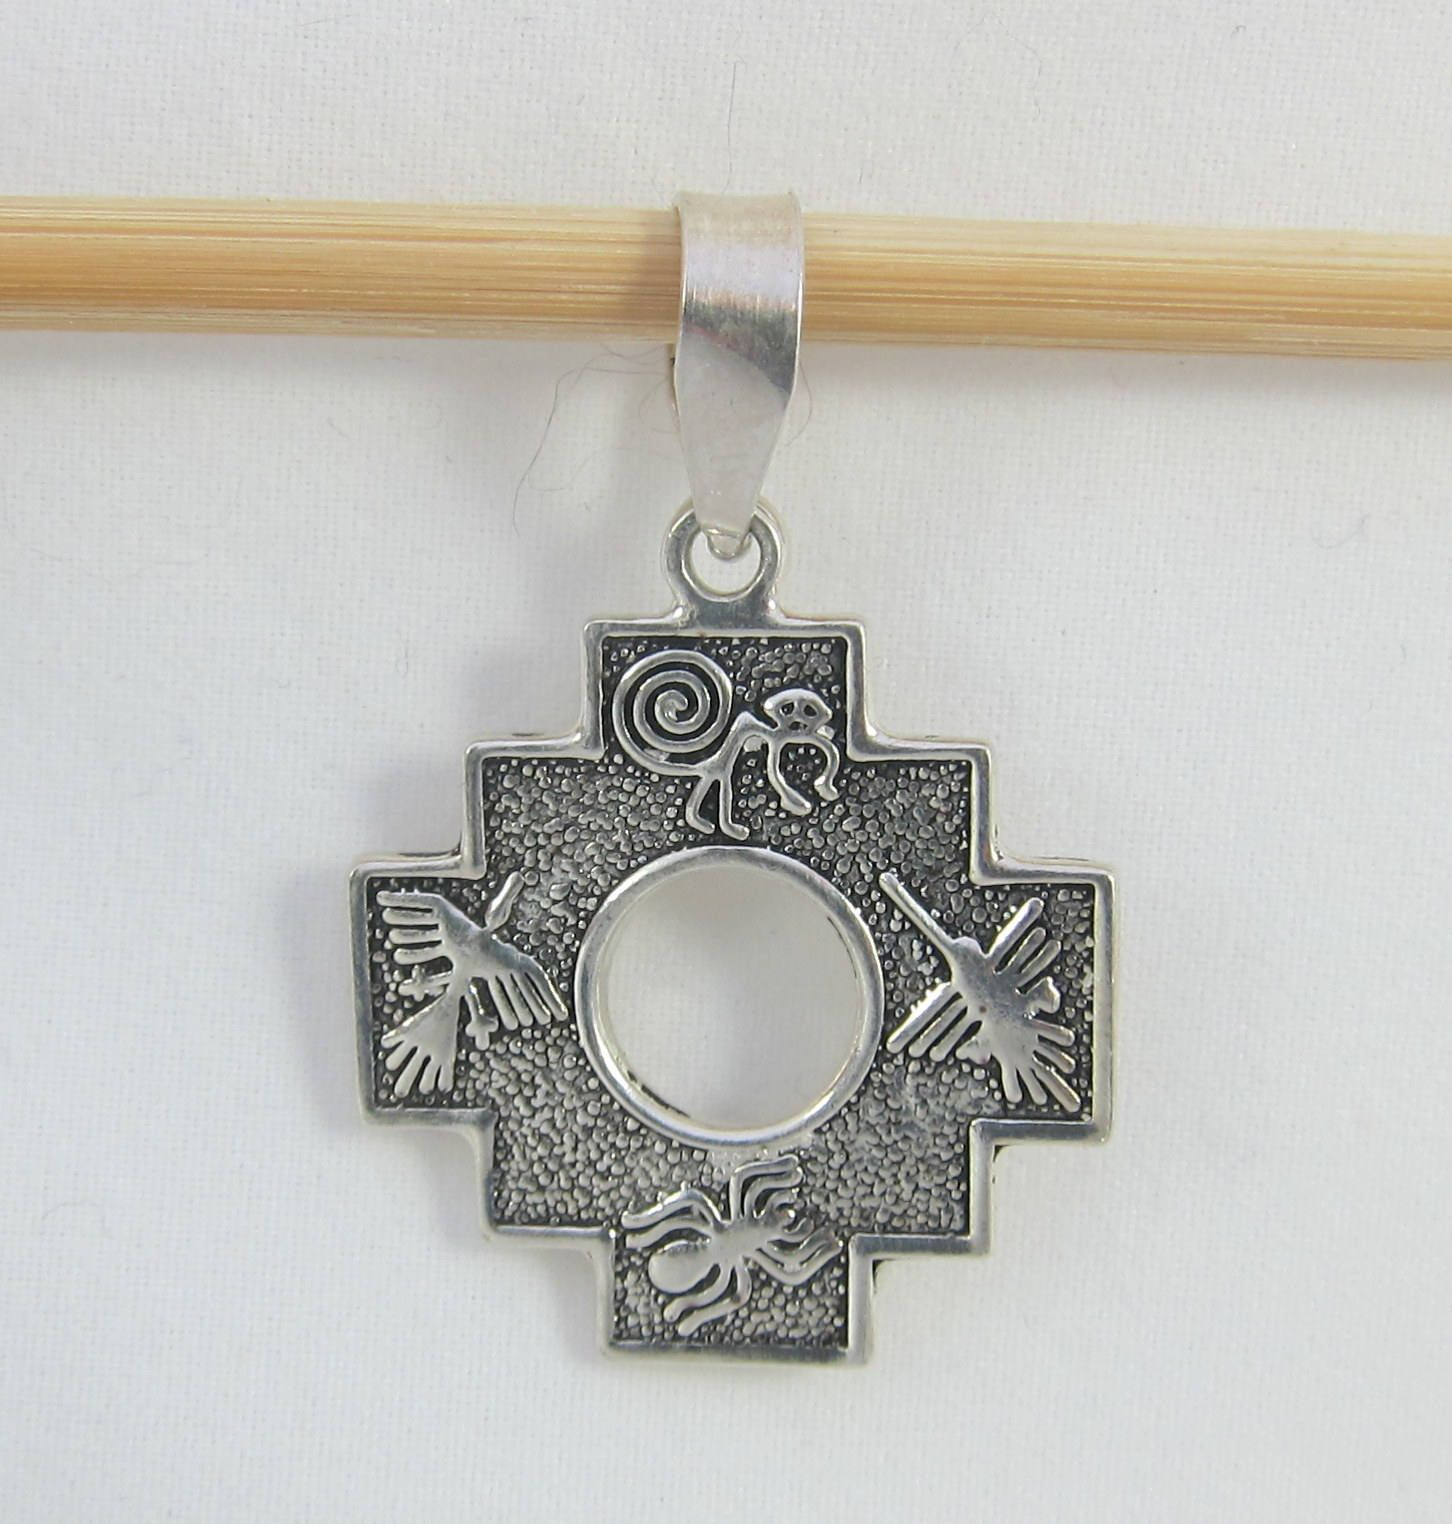 Double sided 950 silver sterling chakana inca cross pendant w double sided 950 silver sterling chakana inca cross pendant w peruan symbols by framarines on aloadofball Images